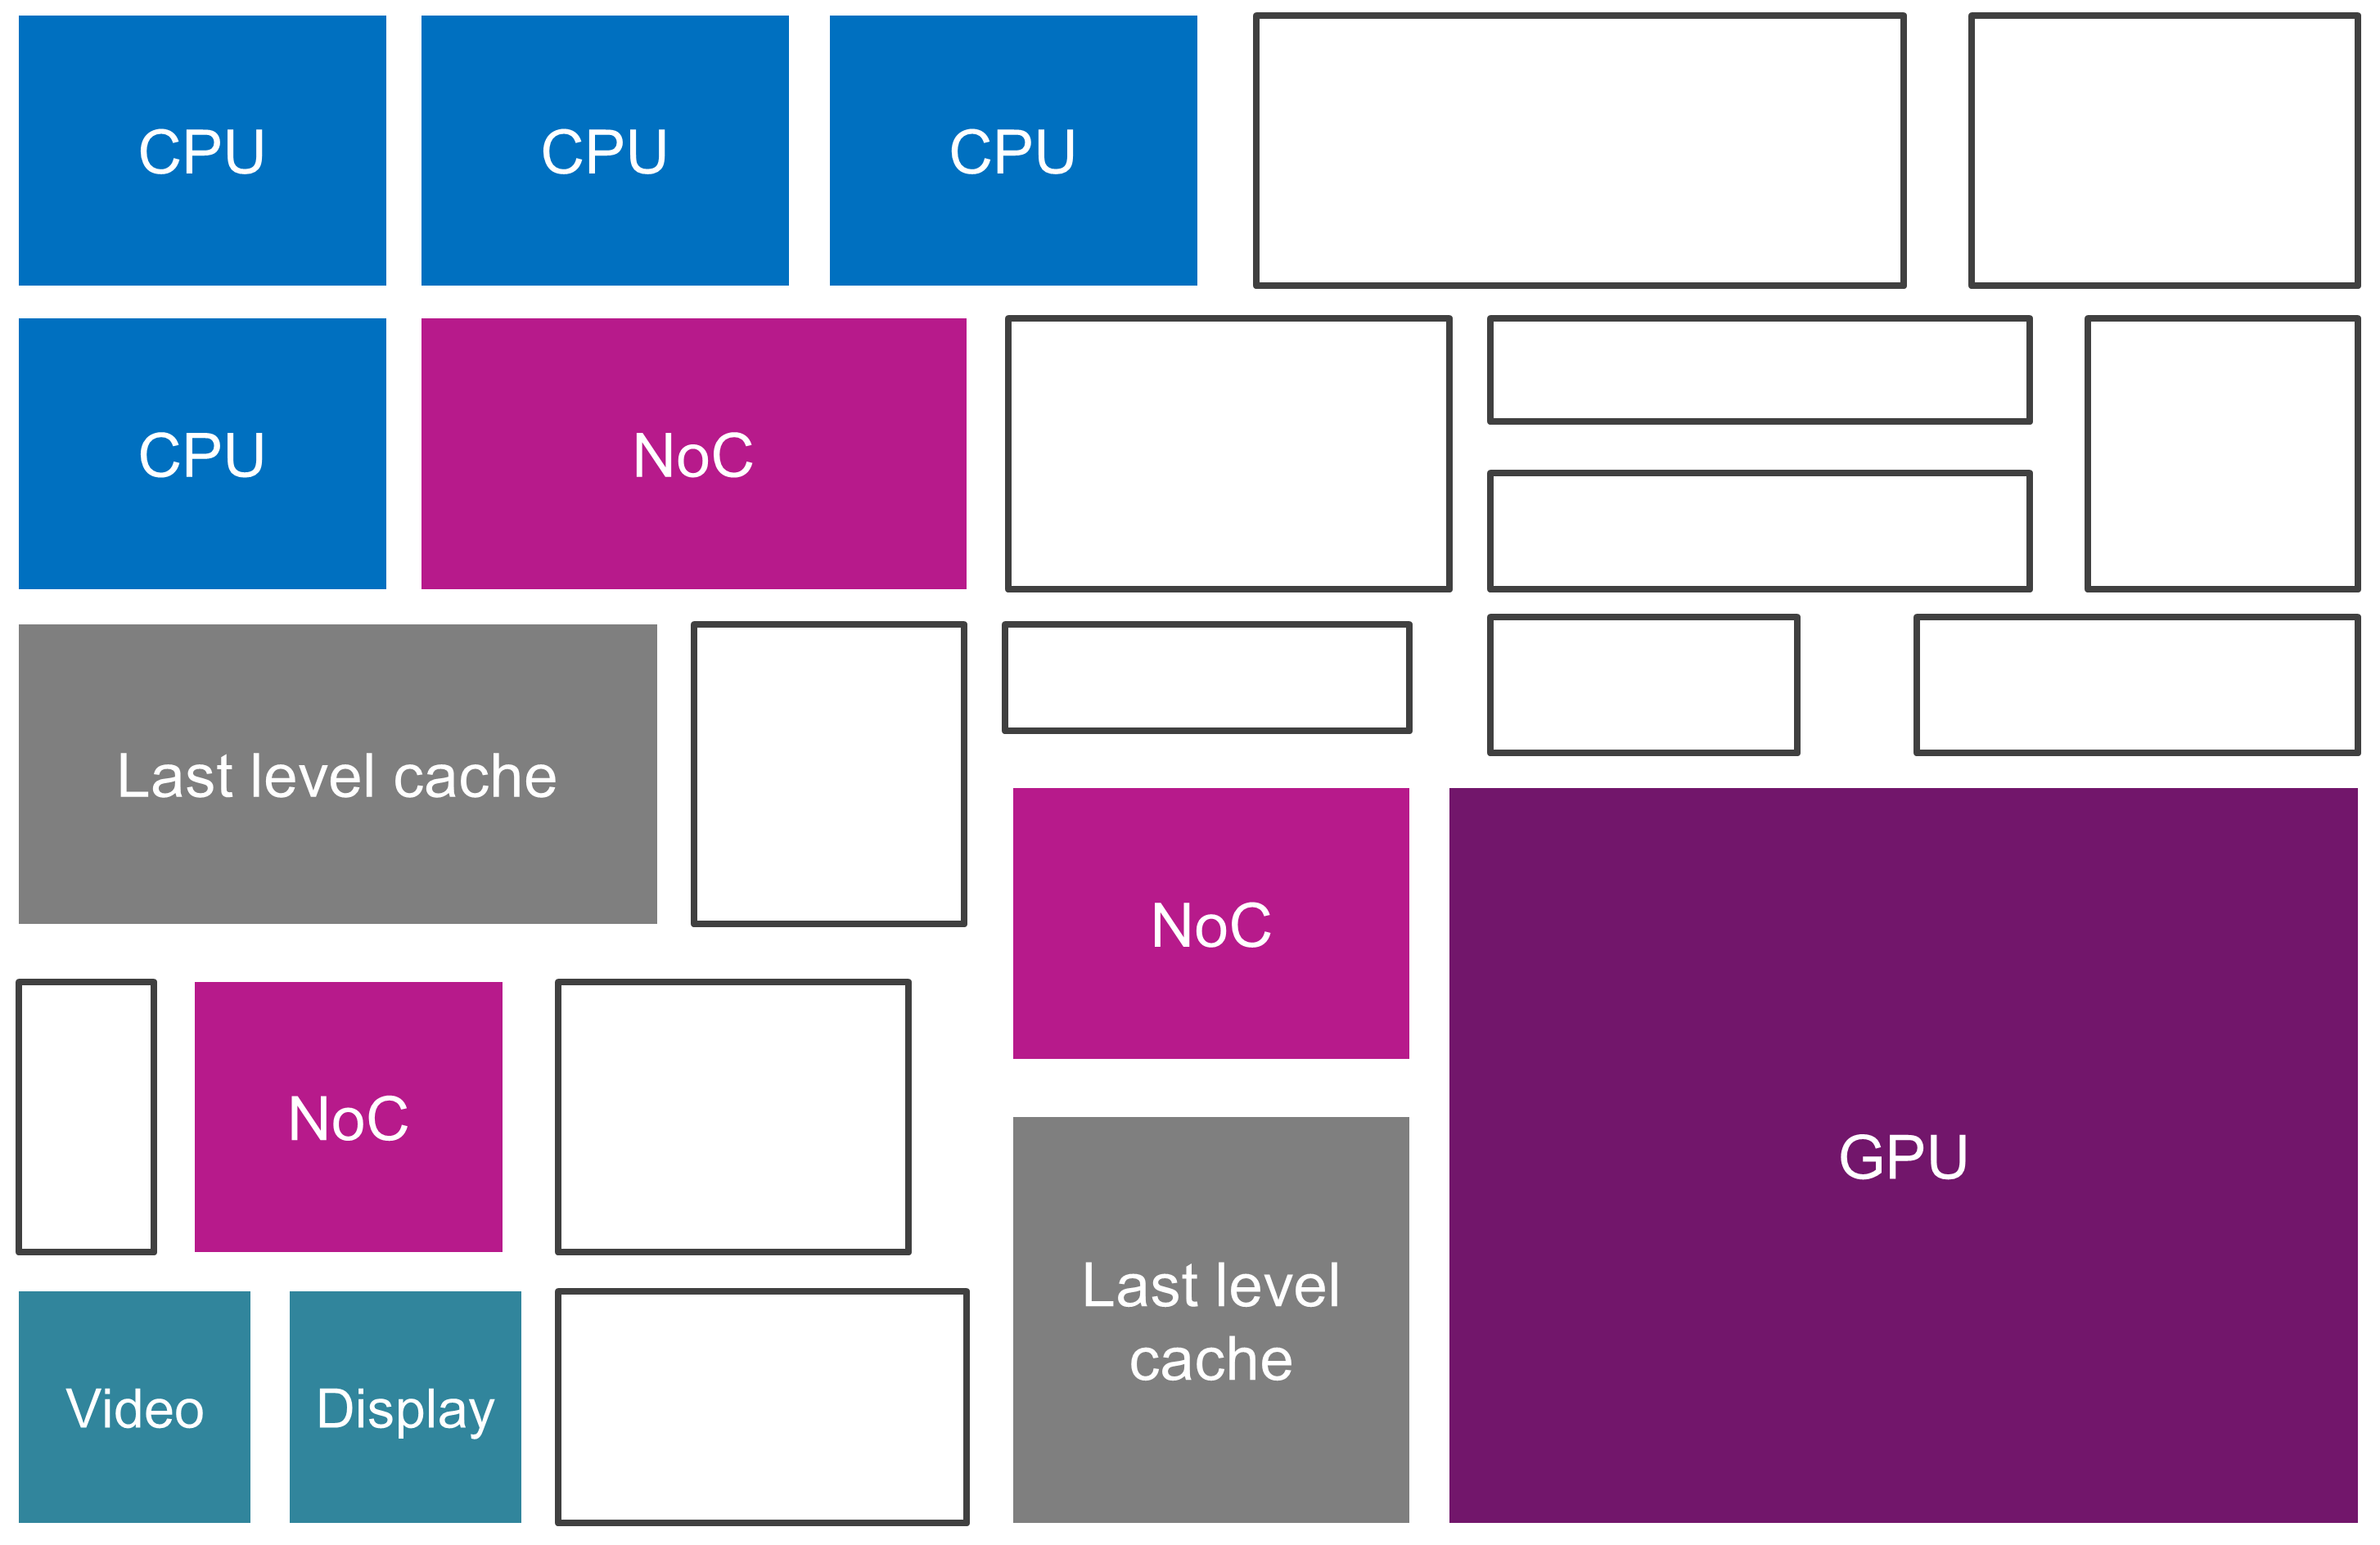 Mobile SoC layout - last level cache + NoC